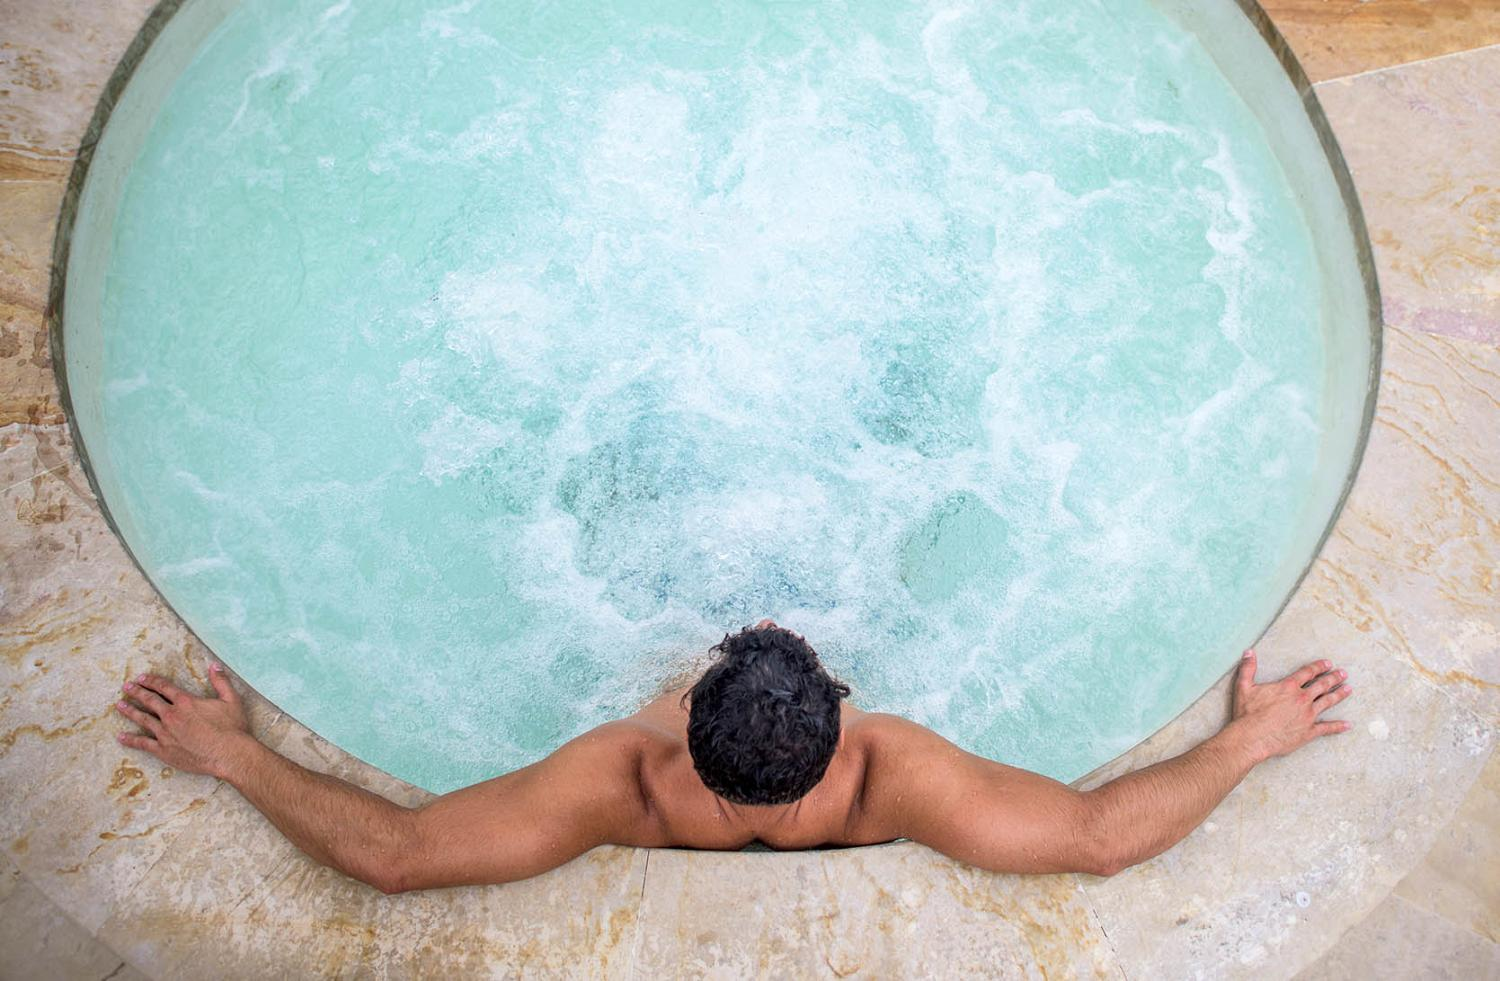 Man relaxing in a hot tub seen from above